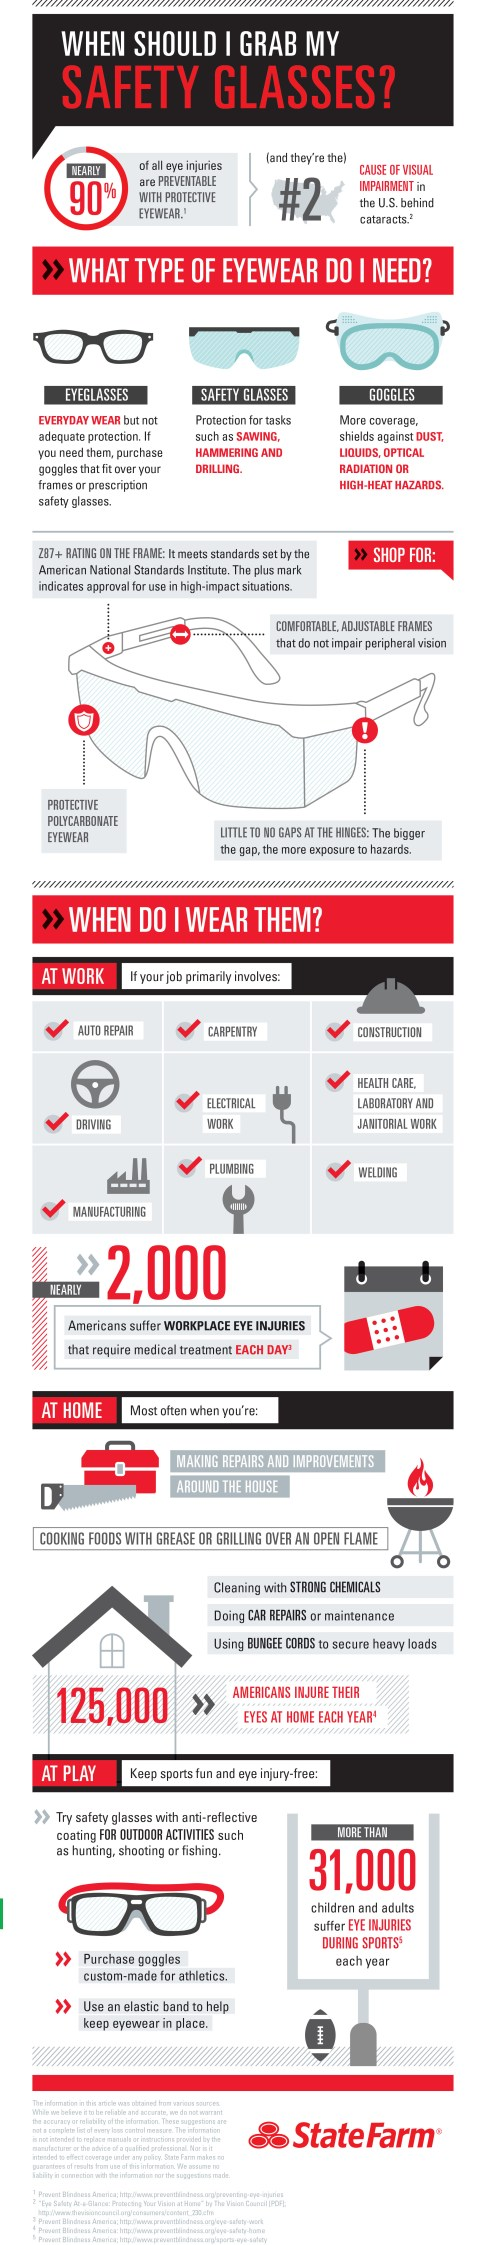 Safety-Glasses-Infographic